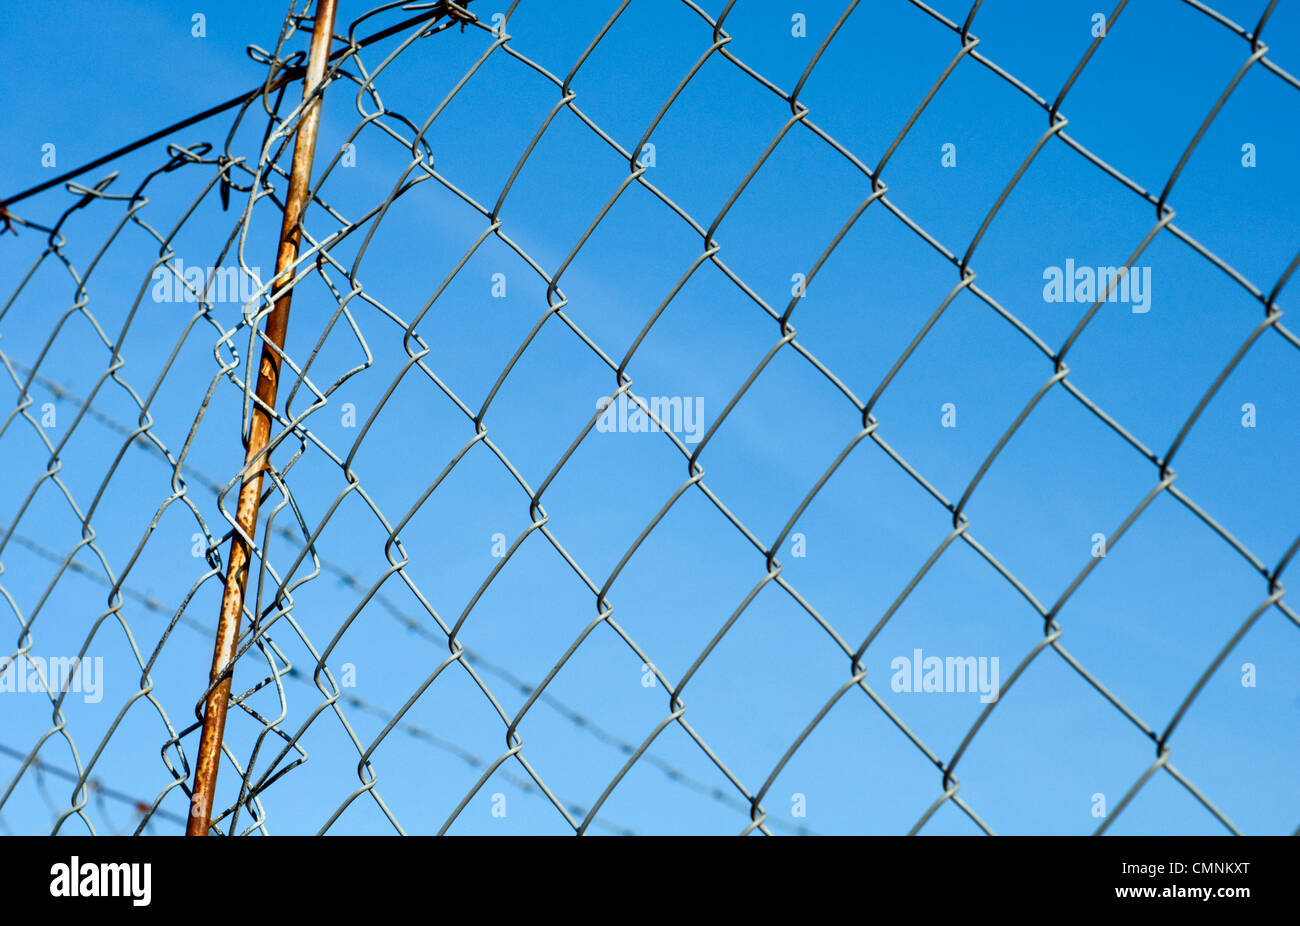 Prison Abstract Stock Photos & Prison Abstract Stock Images - Alamy